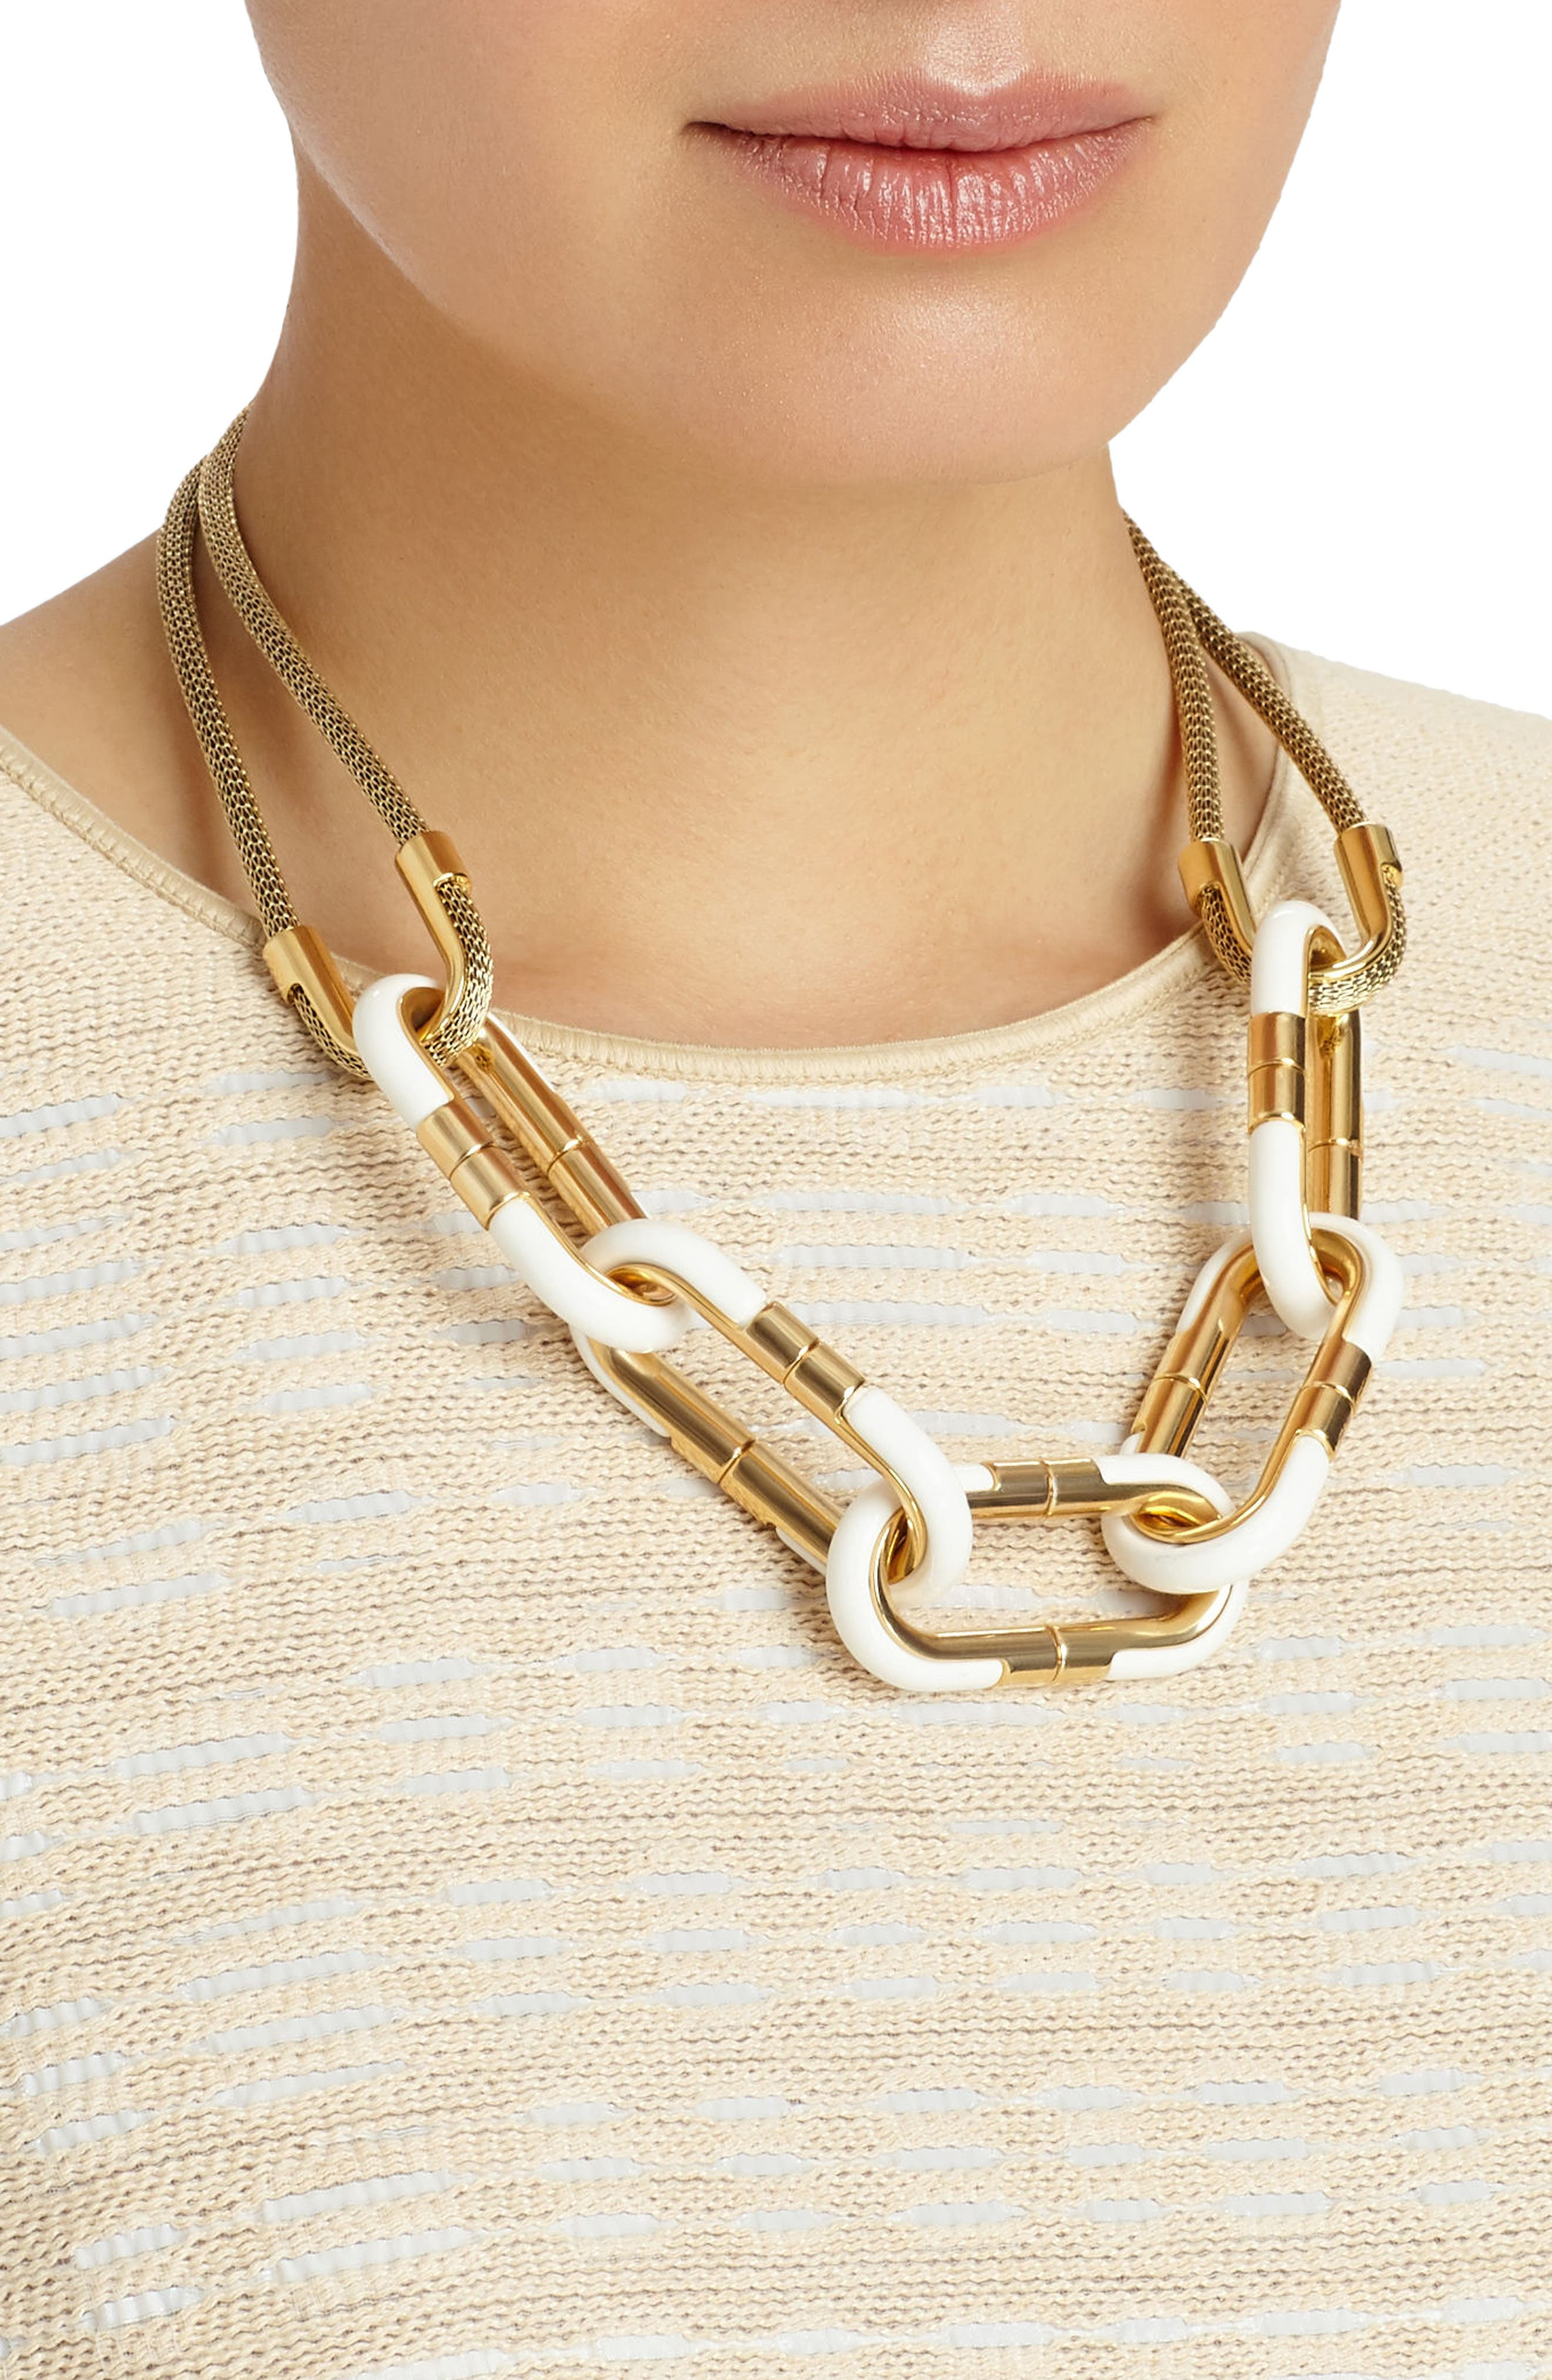 Libre Link Statement Necklace,                             Main thumbnail 1, color,                             710